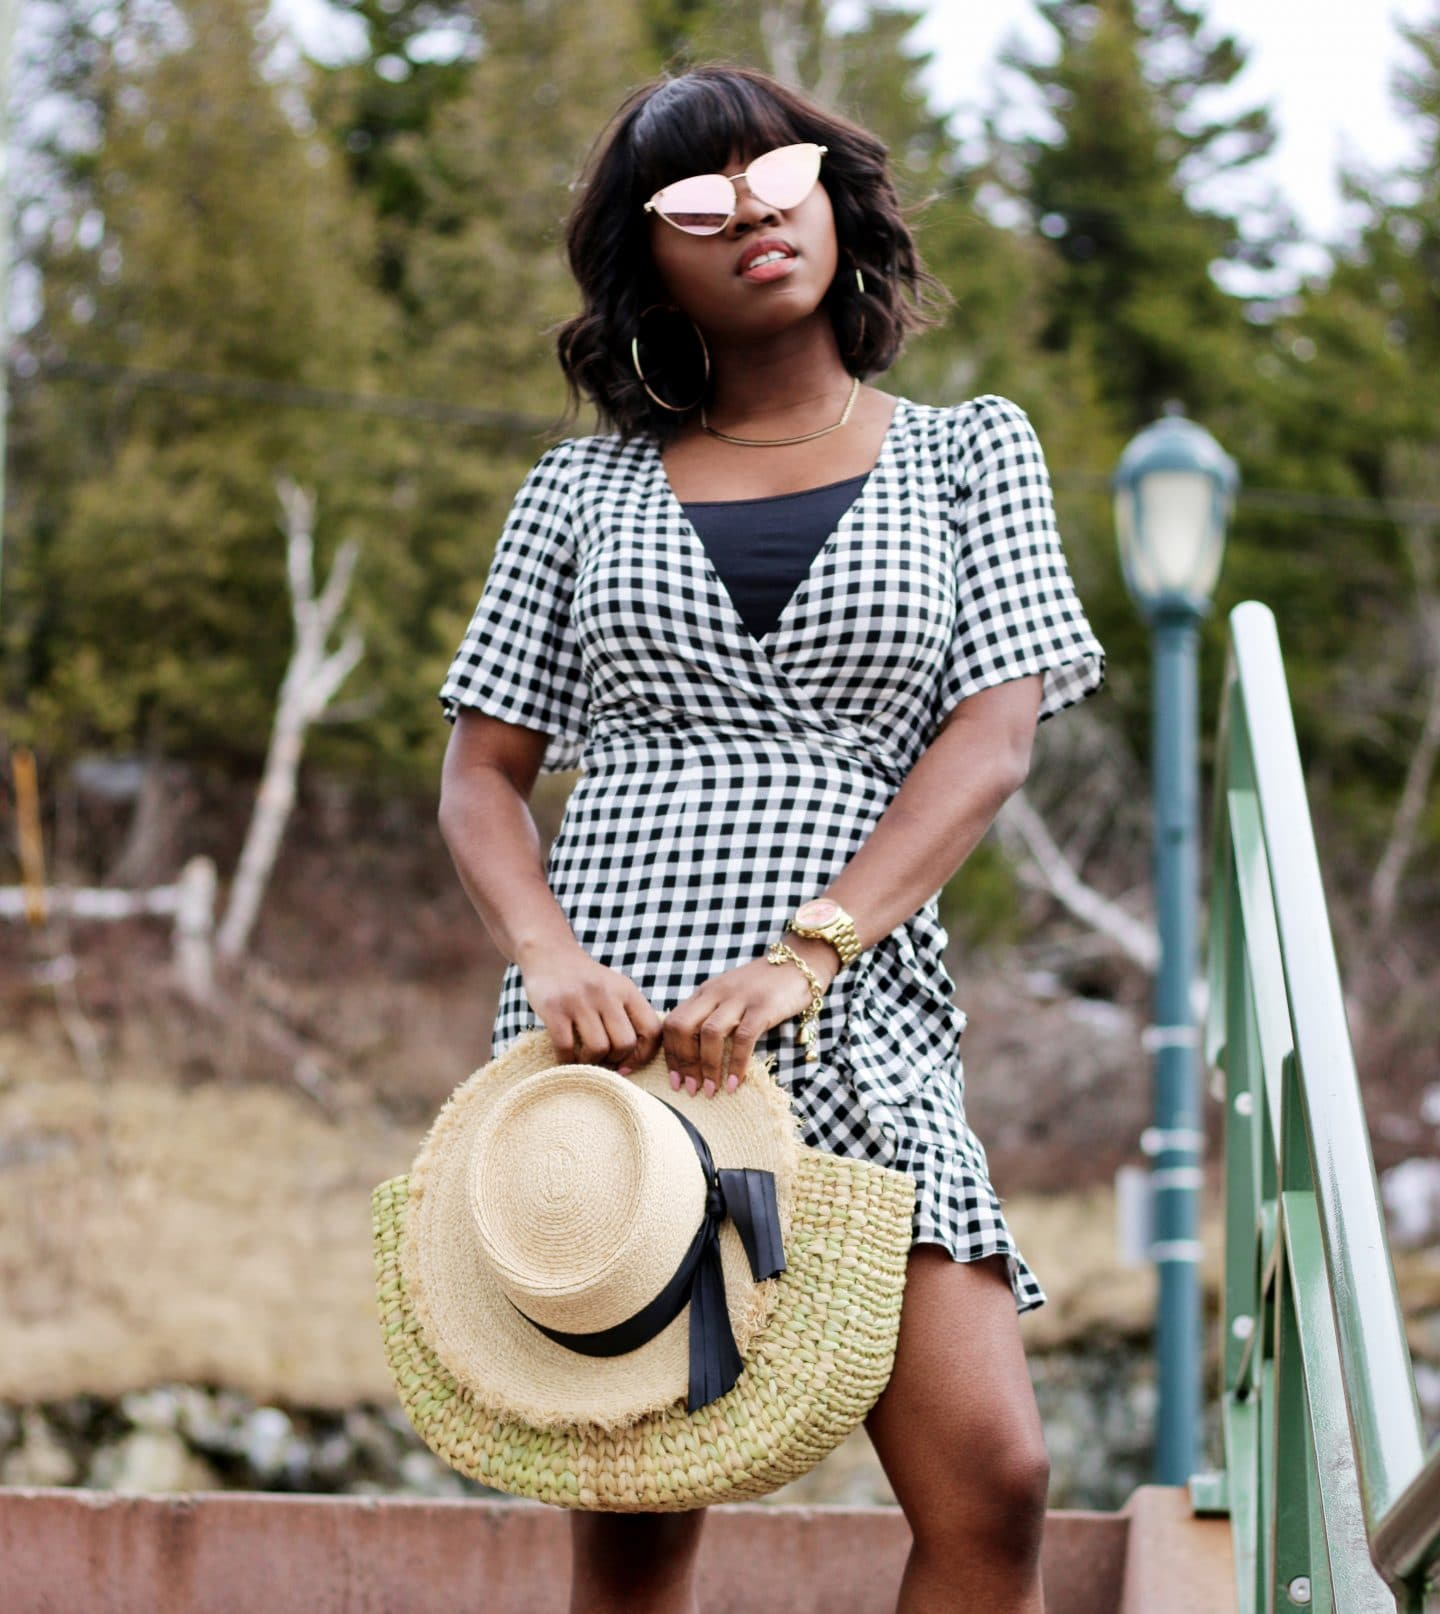 GINGHAM GETAWAY – THE PERFECT PLACE TO WEAR THIS FUN PRINT